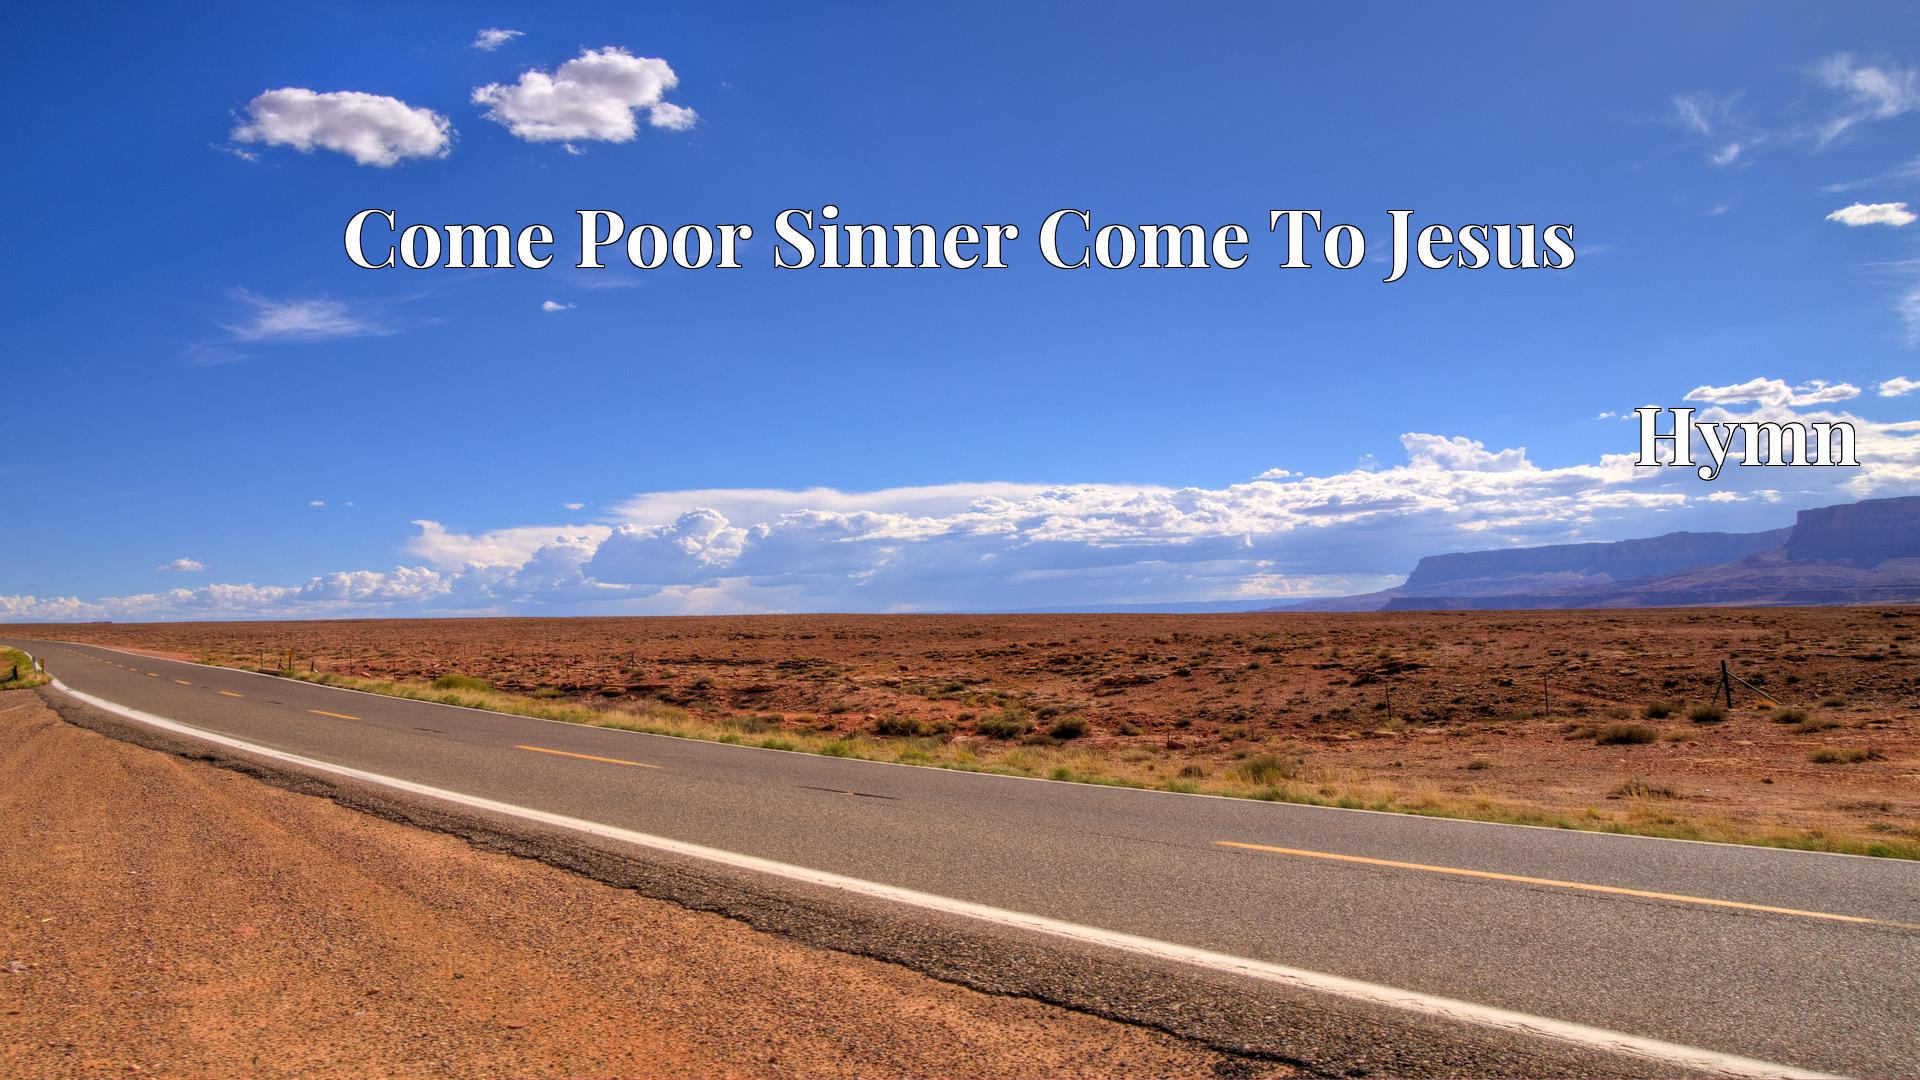 Come Poor Sinner Come To Jesus - Hymn